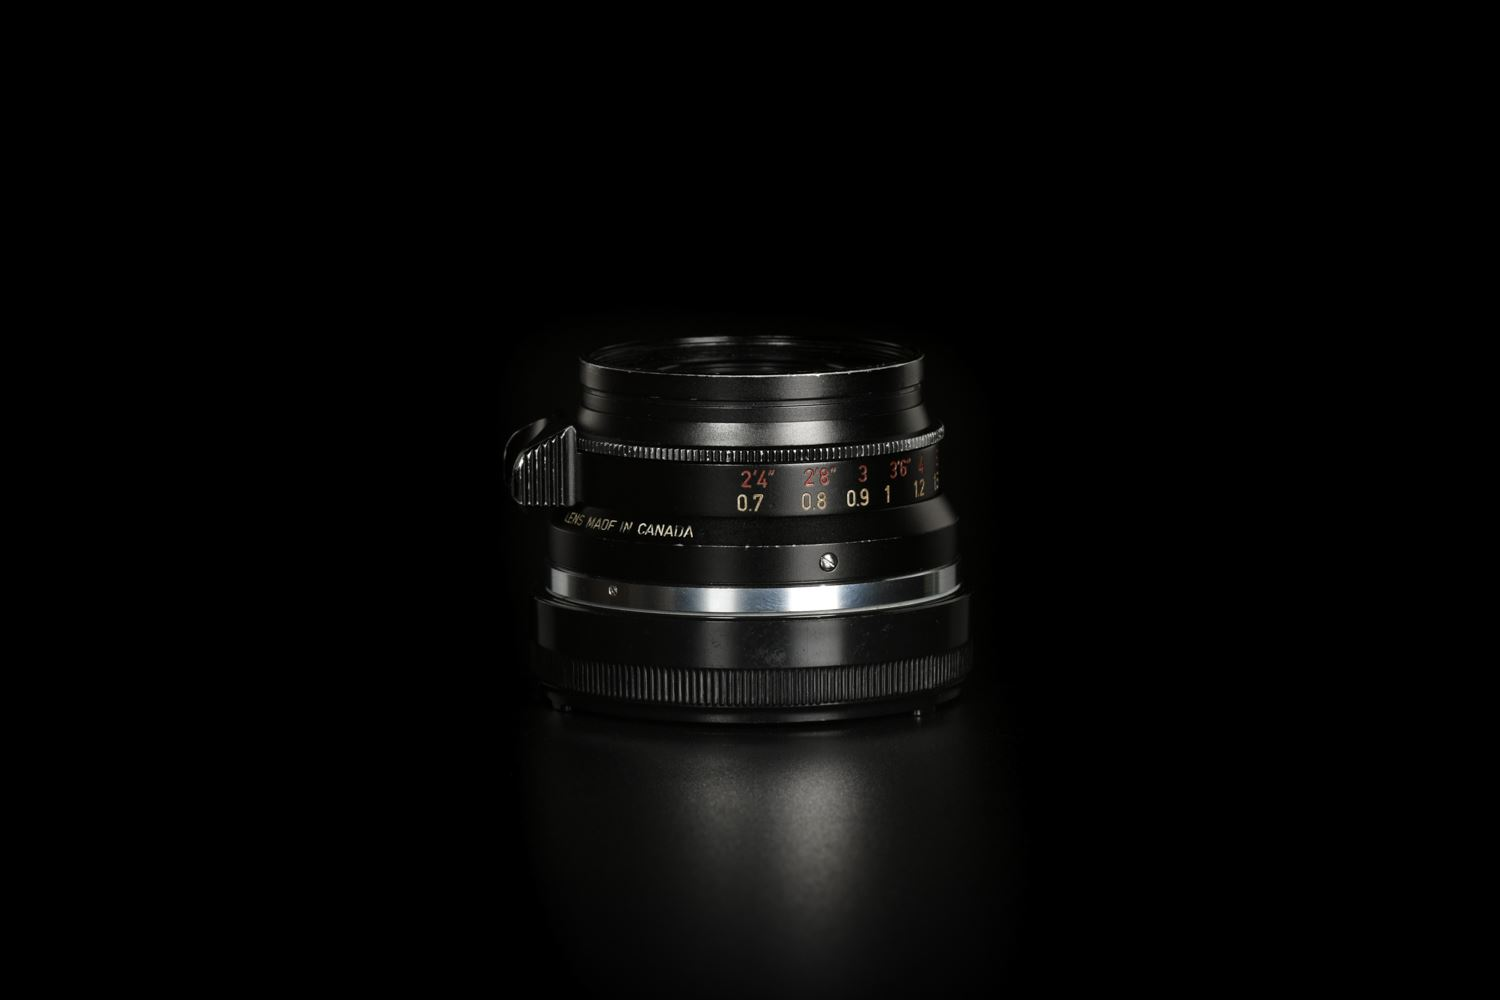 Picture of Leica Summicron-M 35mm f/2 Ver.1 8-element Canada Black Paint M2